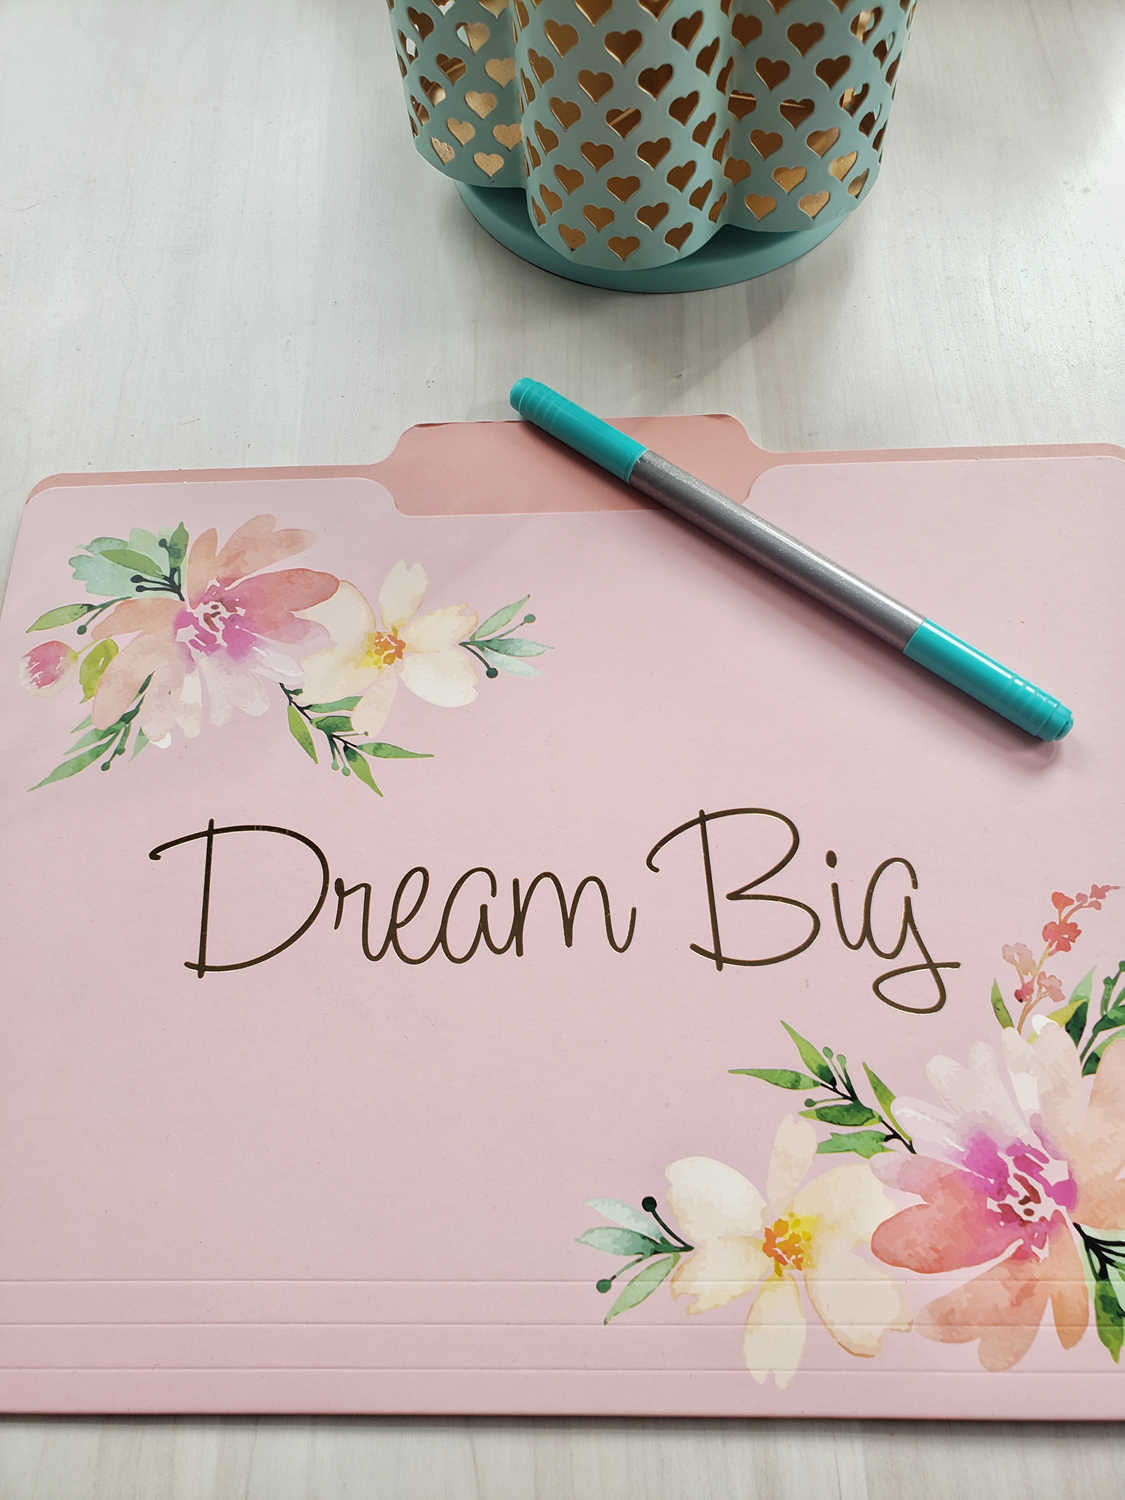 Dream big and don't let your fear of failure stop you